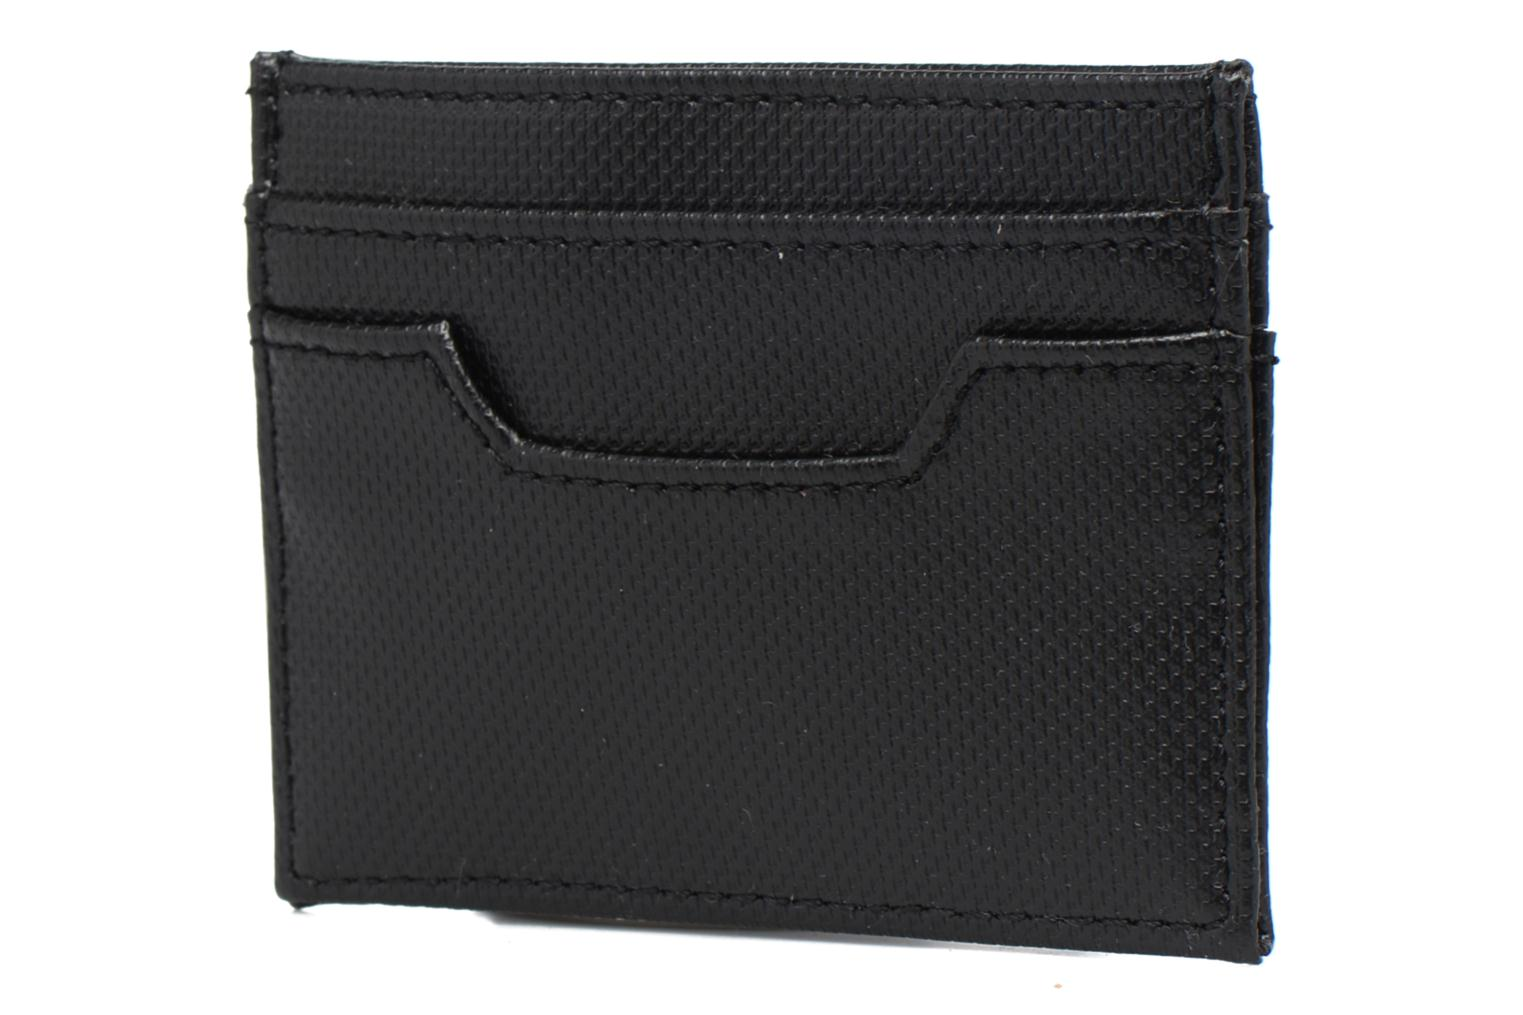 PIQUE TEXTURE CARD HOLDER Black